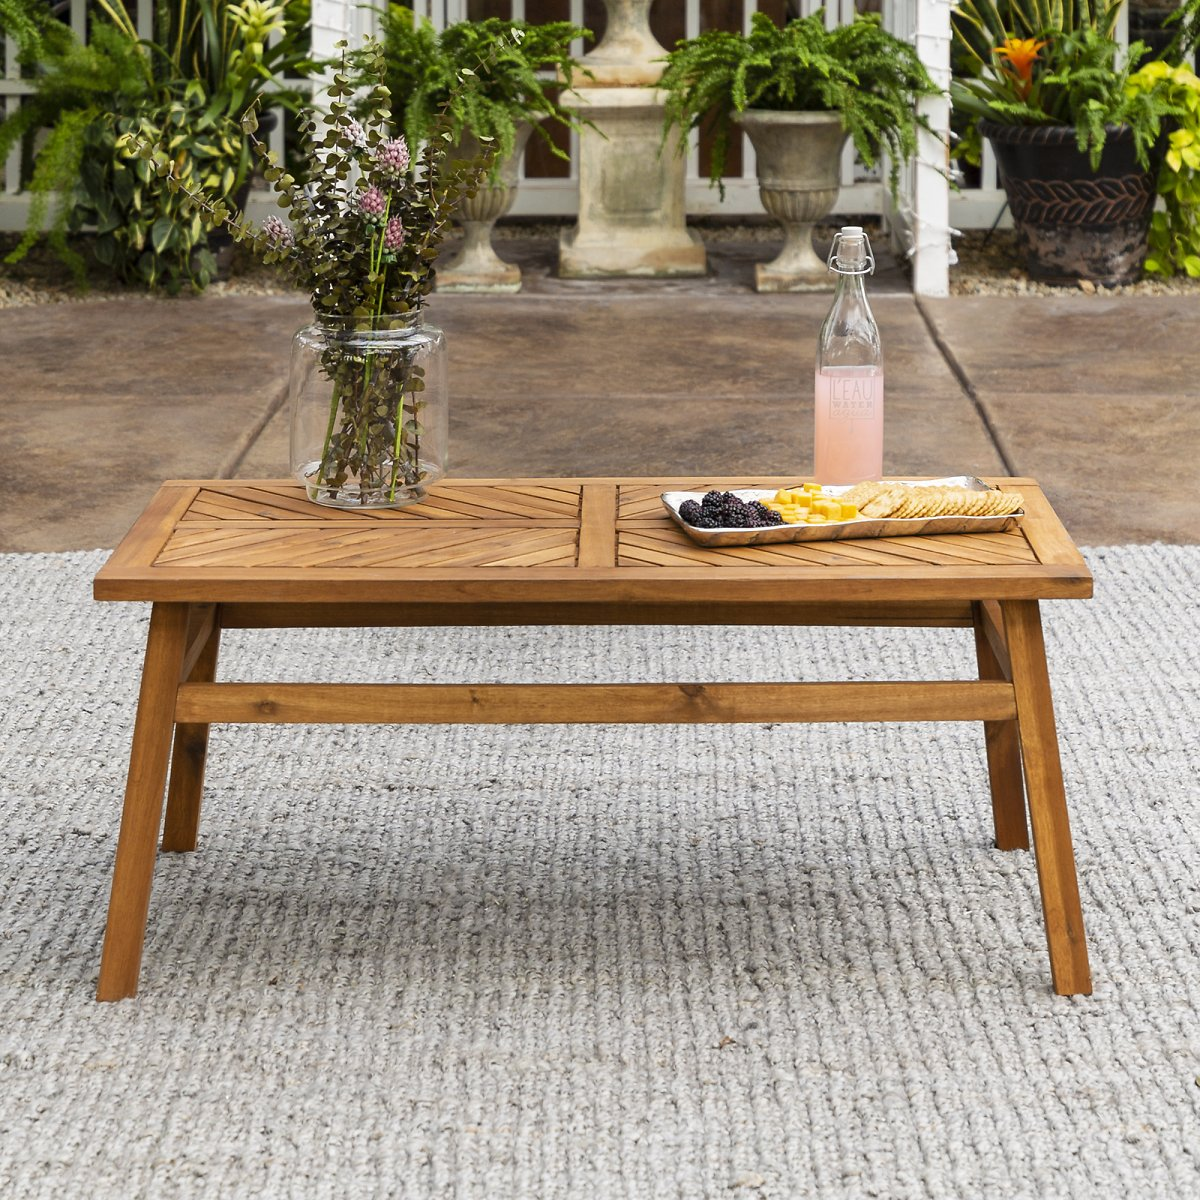 Manor Park Wood Outdoor Coffee Table with Chevron Design, Brown